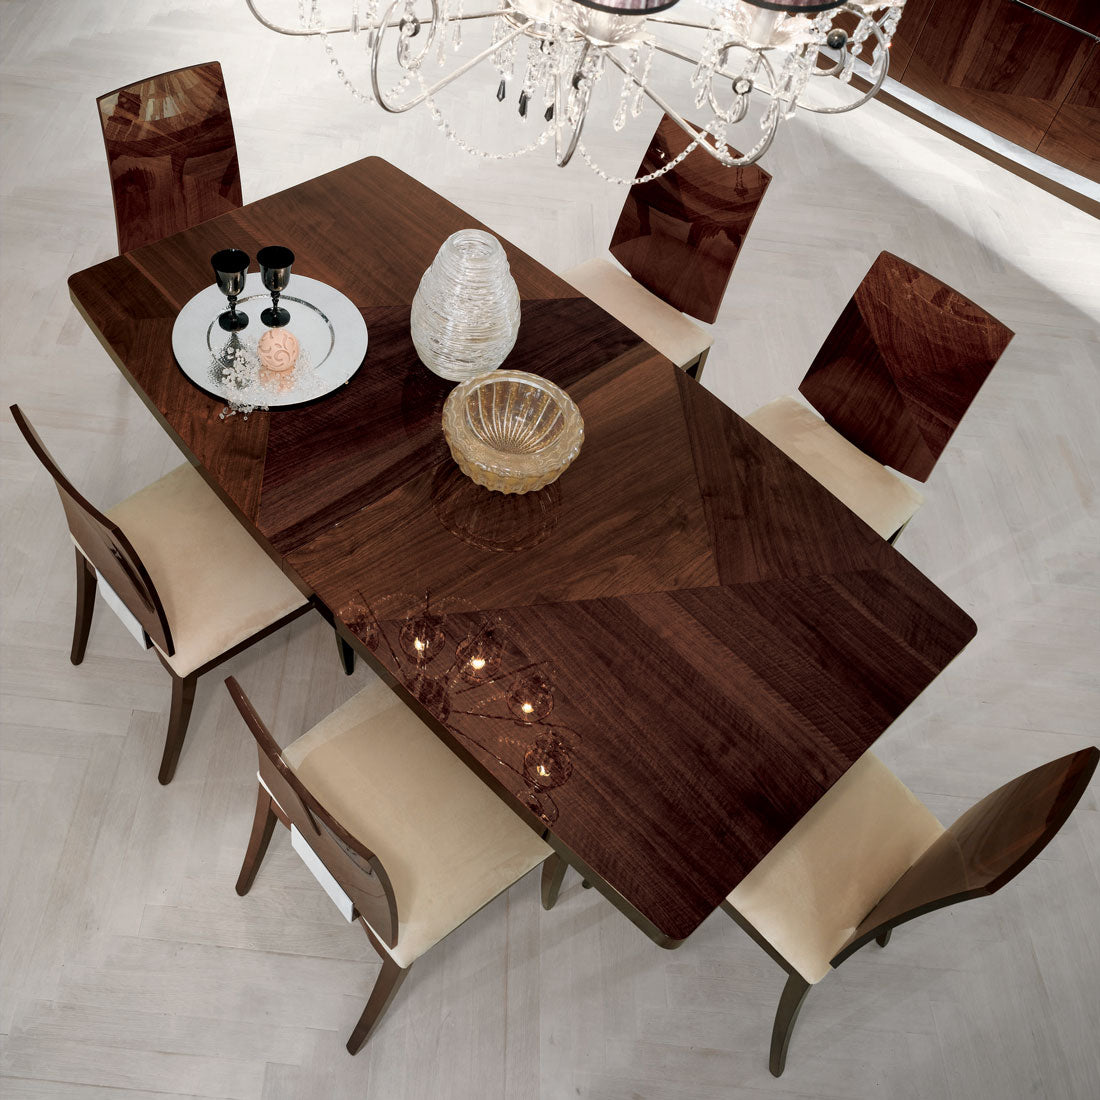 ALF Garda Dining Room Collection - Isingtec